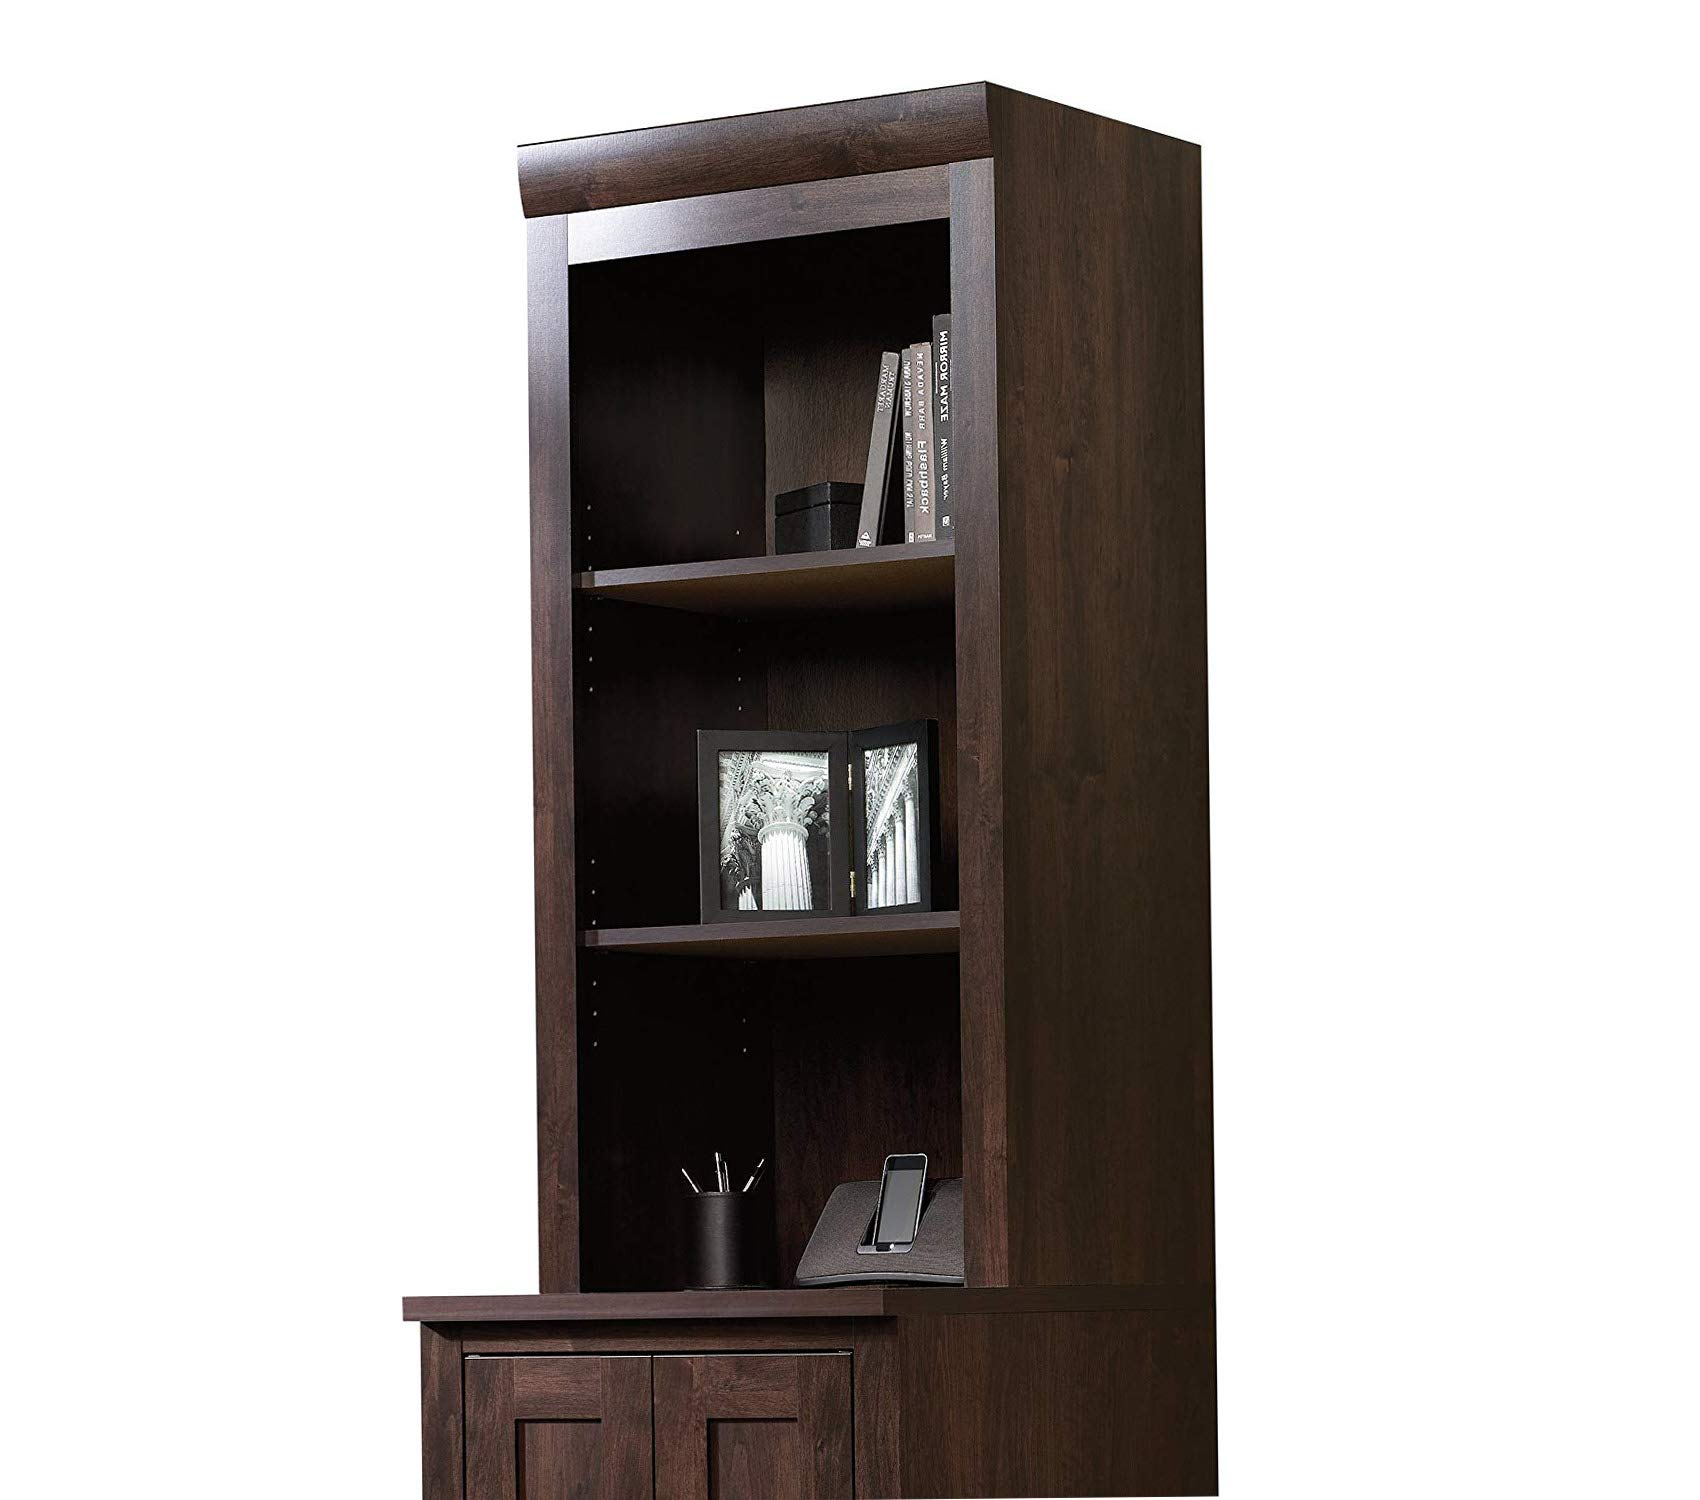 Sаudеr Deluxe Premium Collection Office Port Hutch L: 23.39'' x W: 15.63'' x H: 47.17'' Dark Alder Finish Decor Comfy Living Furniture by Sаudеr (Image #1)